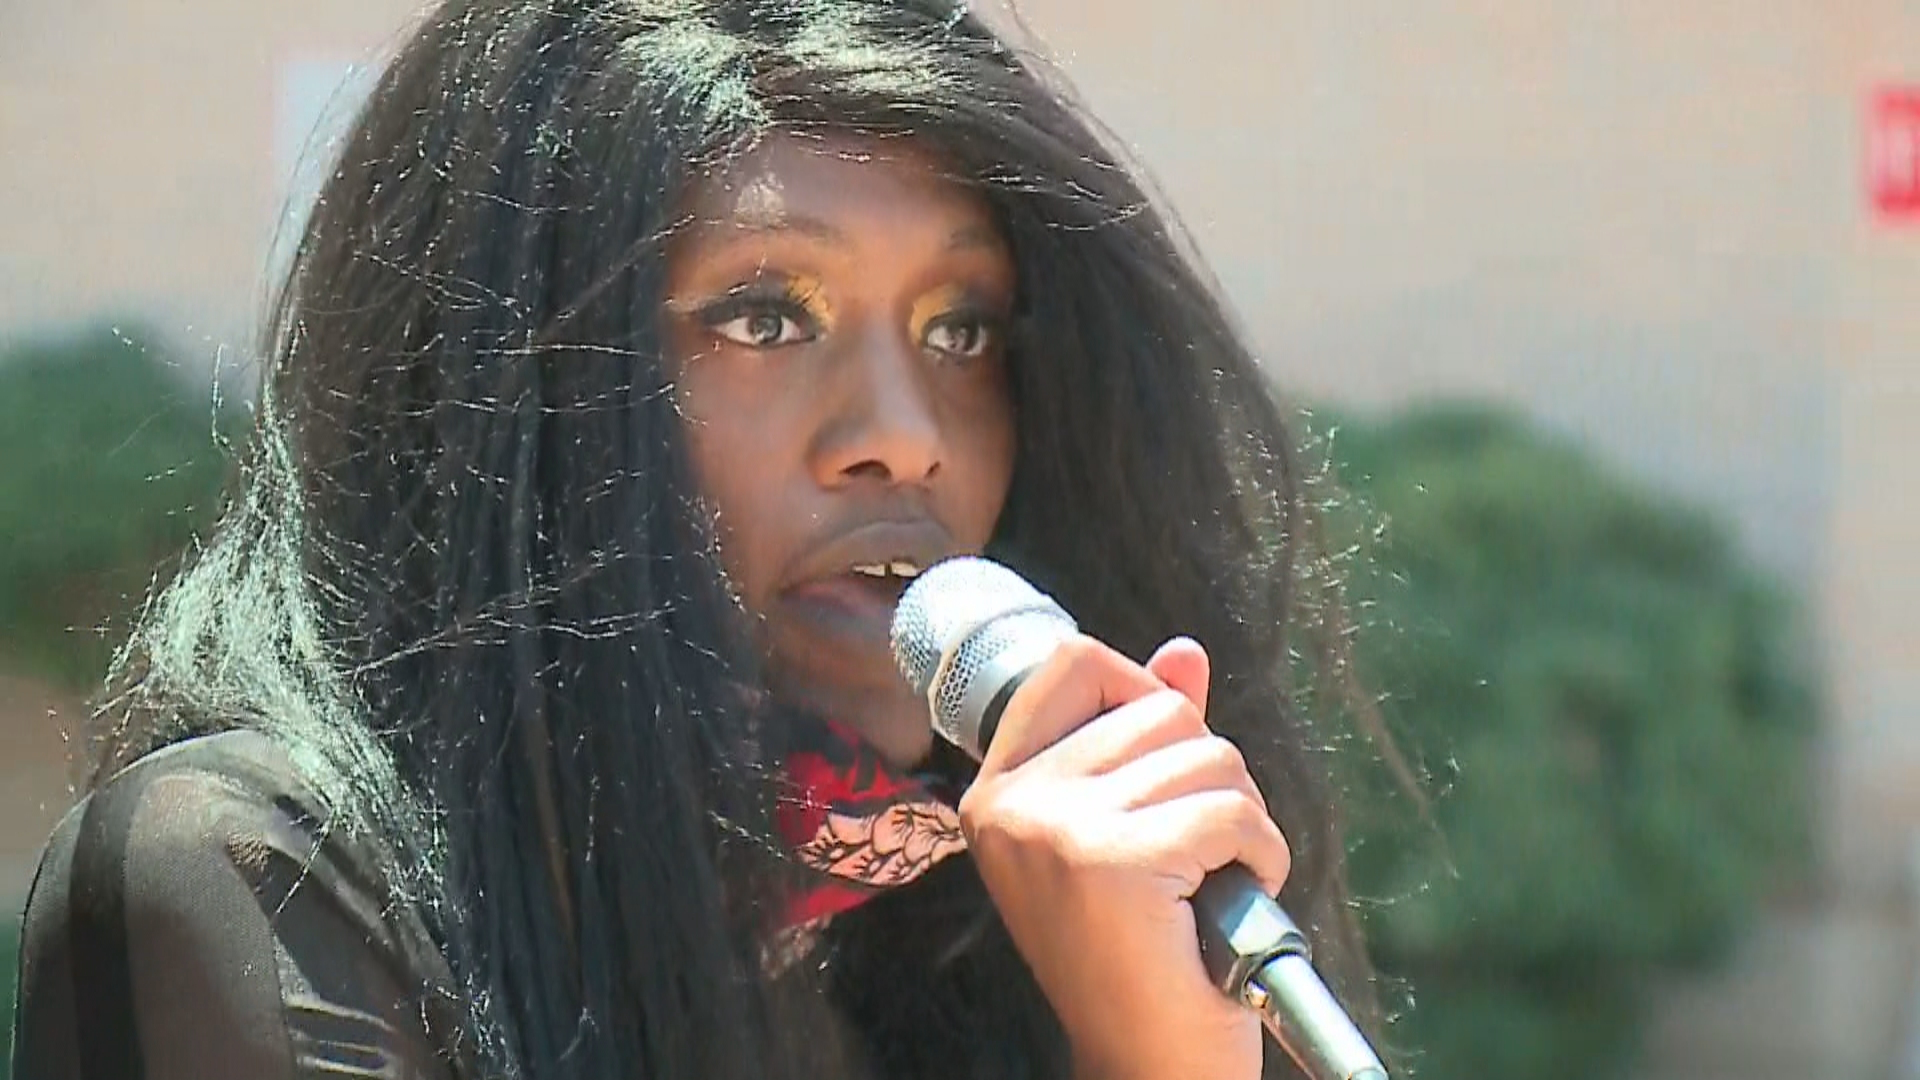 Saraneka Martin speaks in front of APD headquarters June 12, 2020 about being shot in the stomach with a rubber bullet (KXAN Photo)